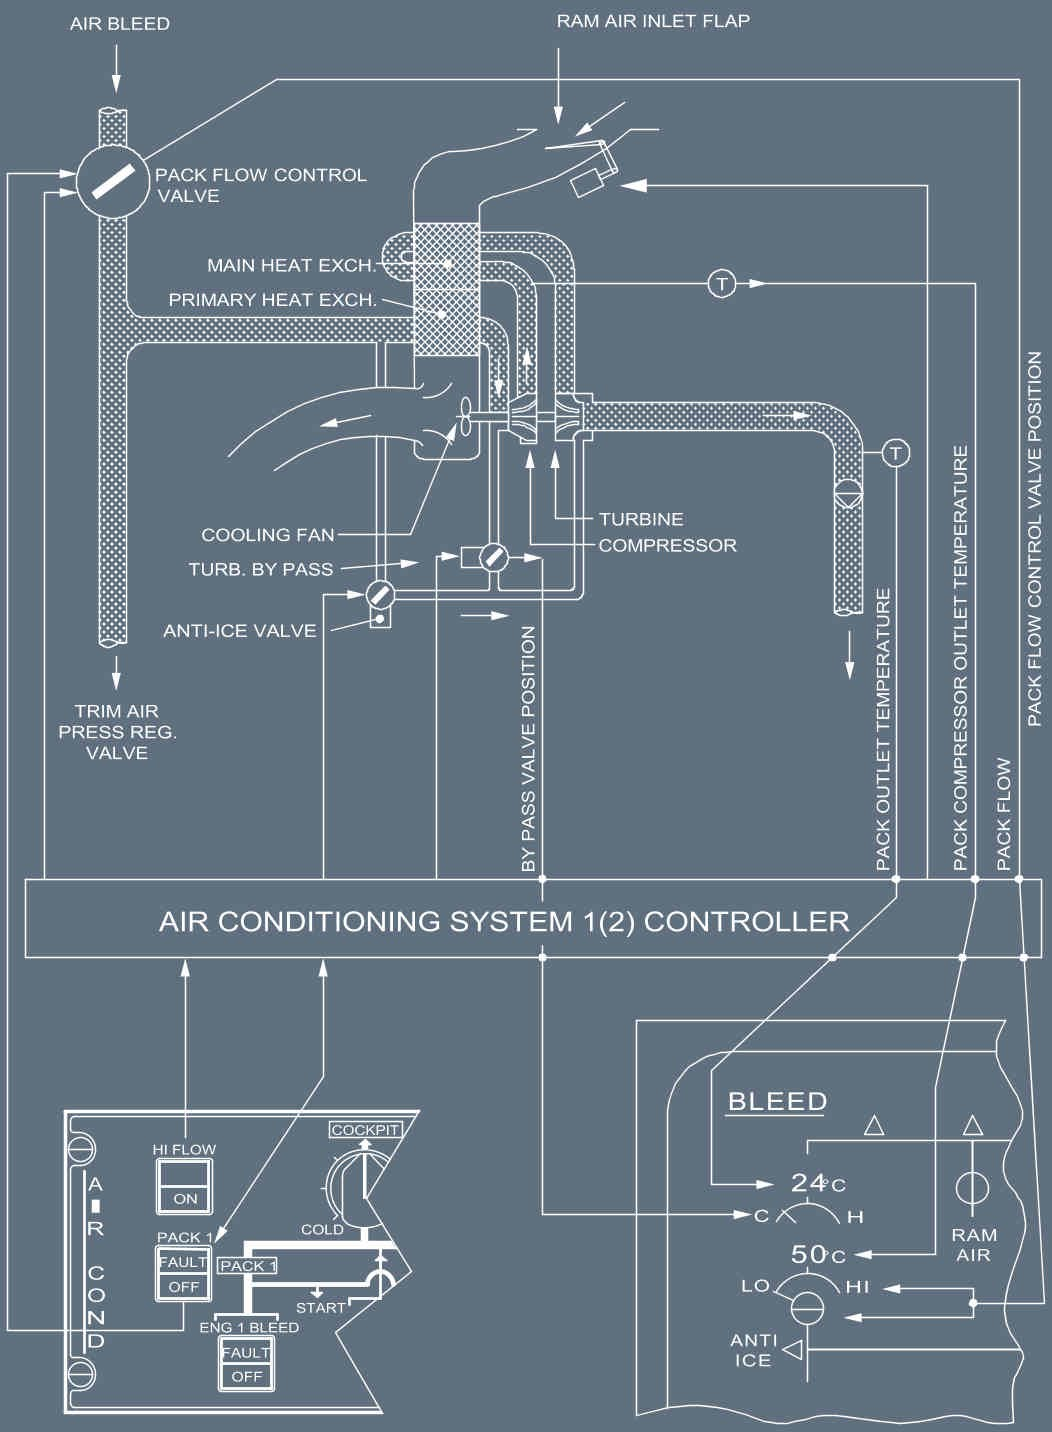 AIR CONDITIONING - MAIN COMPONENTS PACK FLOW CONTROL VALVE